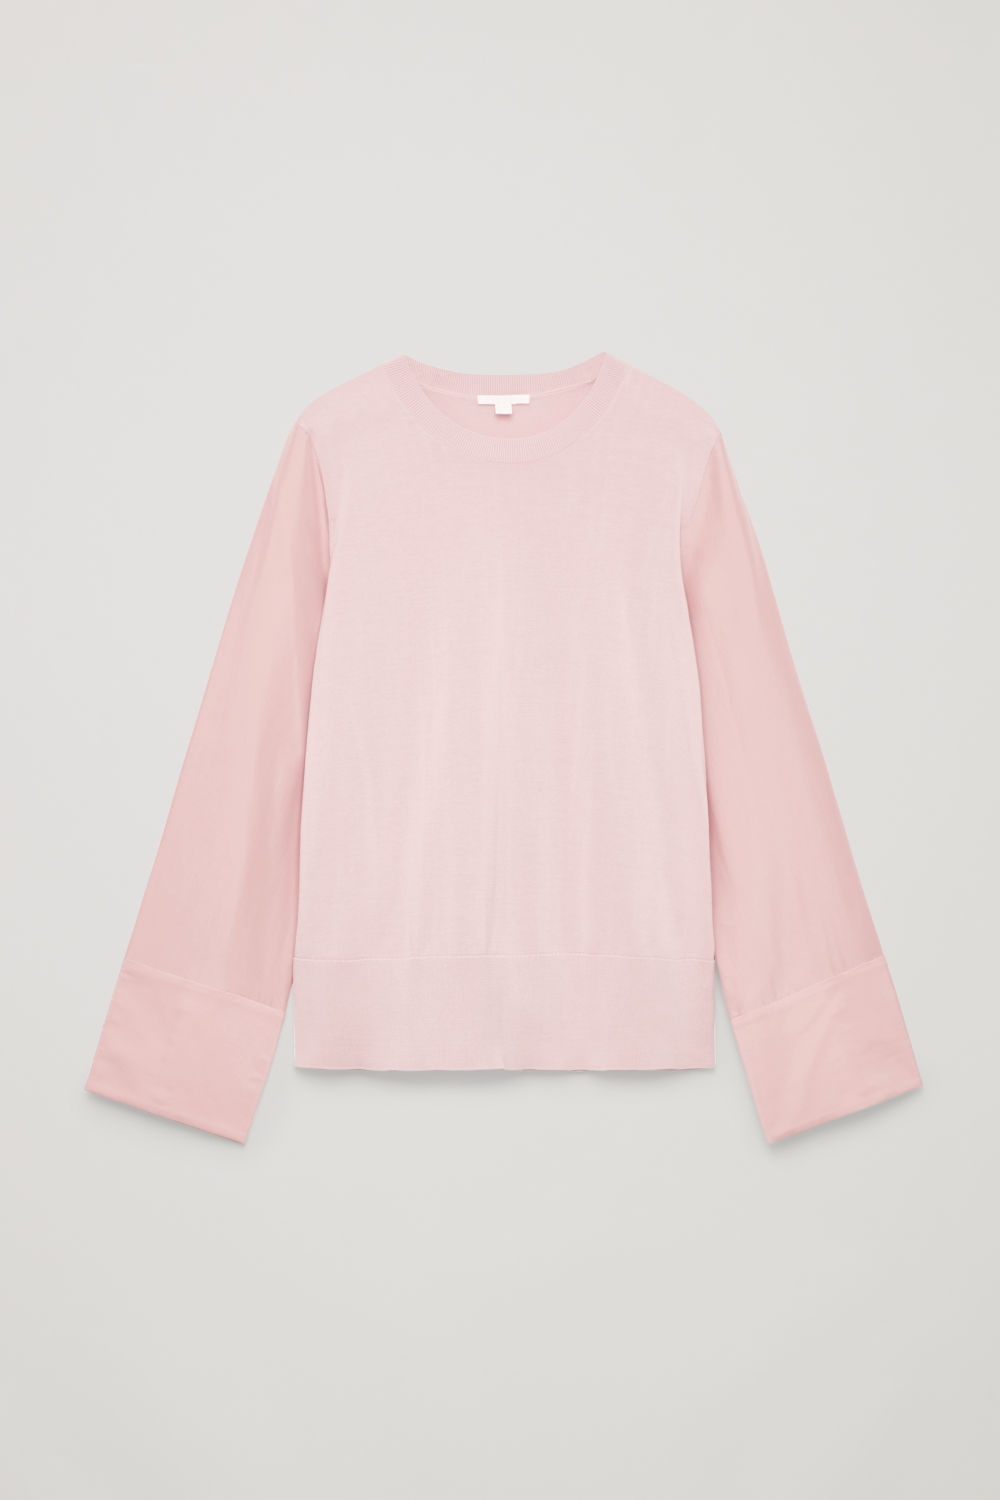 SILK-SLEEVED COTTON-KNIT TOP